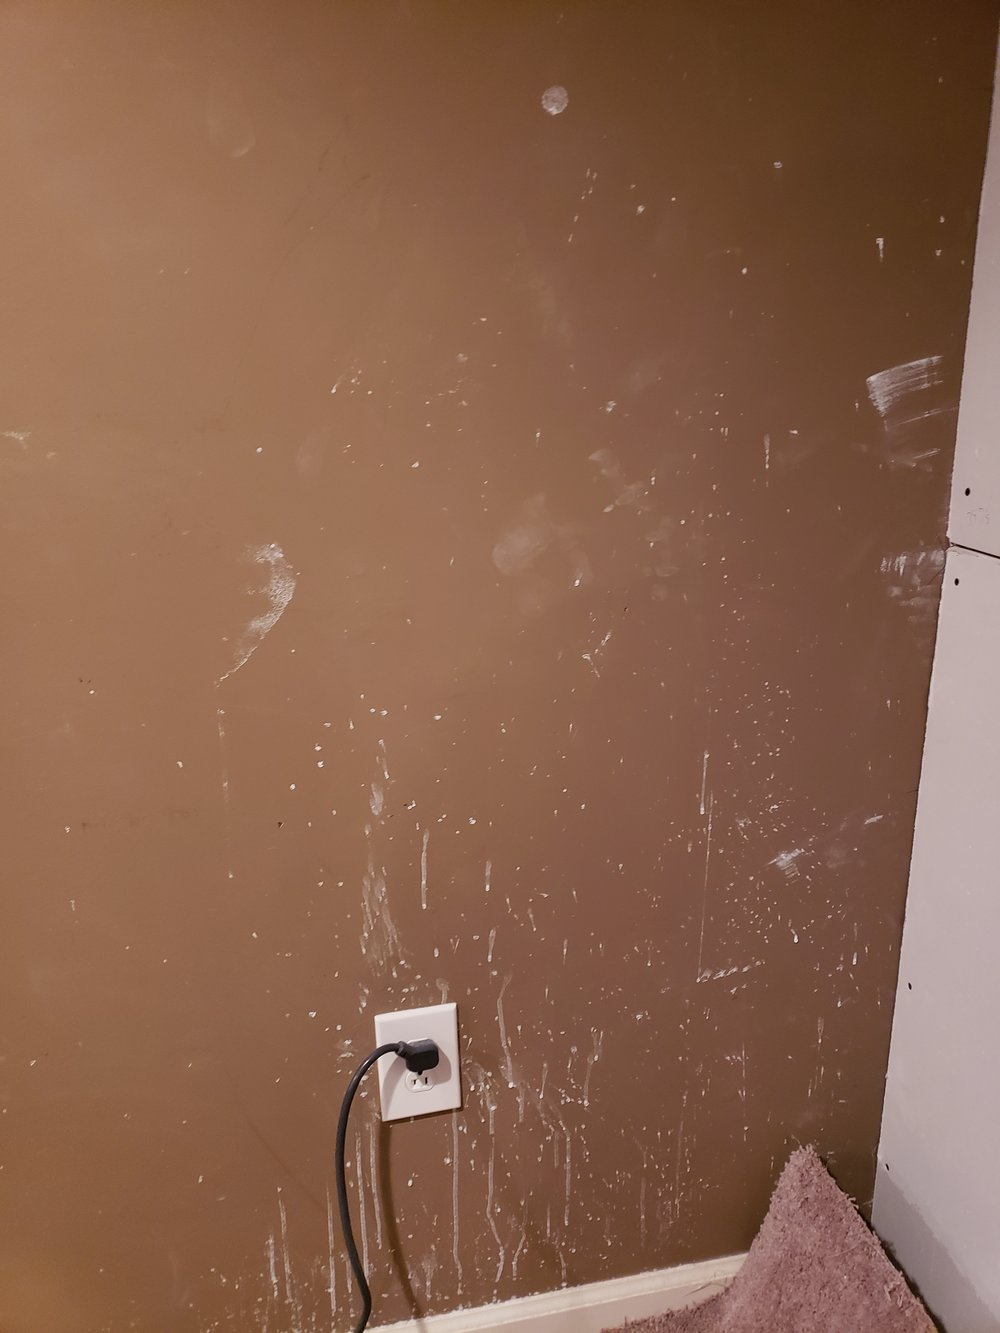 Three months with a float tank in my home and it destroyed the walls. It was my first float tank. Now I know - put up frp on the walls first.  But thankfully, new drywall and carpeting is underway to FINALLY fix my home float disaster.  -Amy